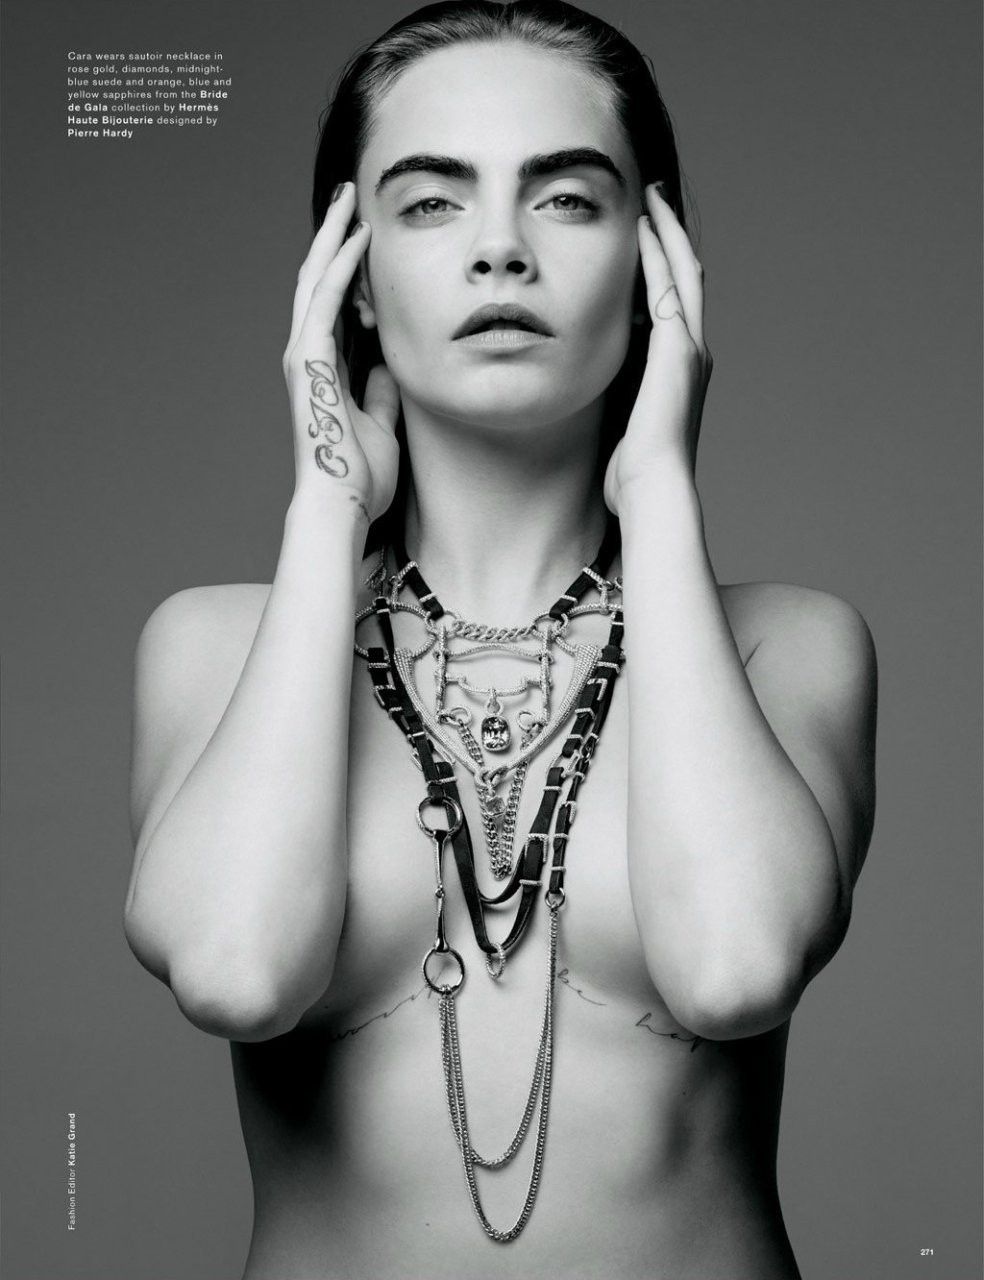 Cara-Delevingne-Kendall-Jenner-in-Love-Magazine-07---TheFappening.nu7facaad19653e428.jpg